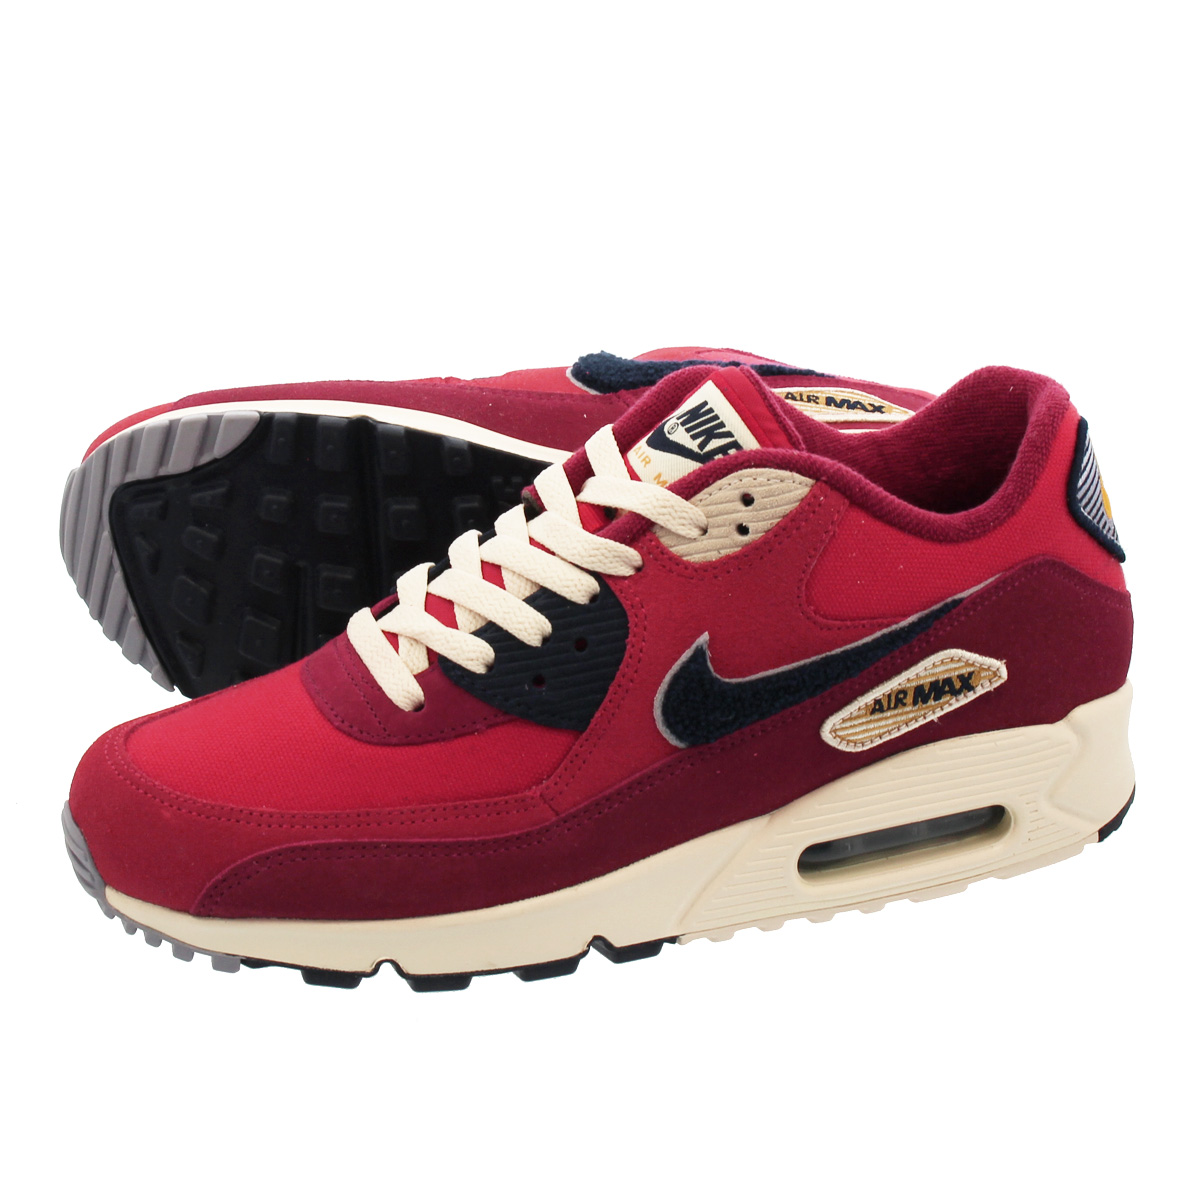 00af3c17f ... shopping nike air max 90 premium kie ney amax 90 premium university red  provence purple 858954